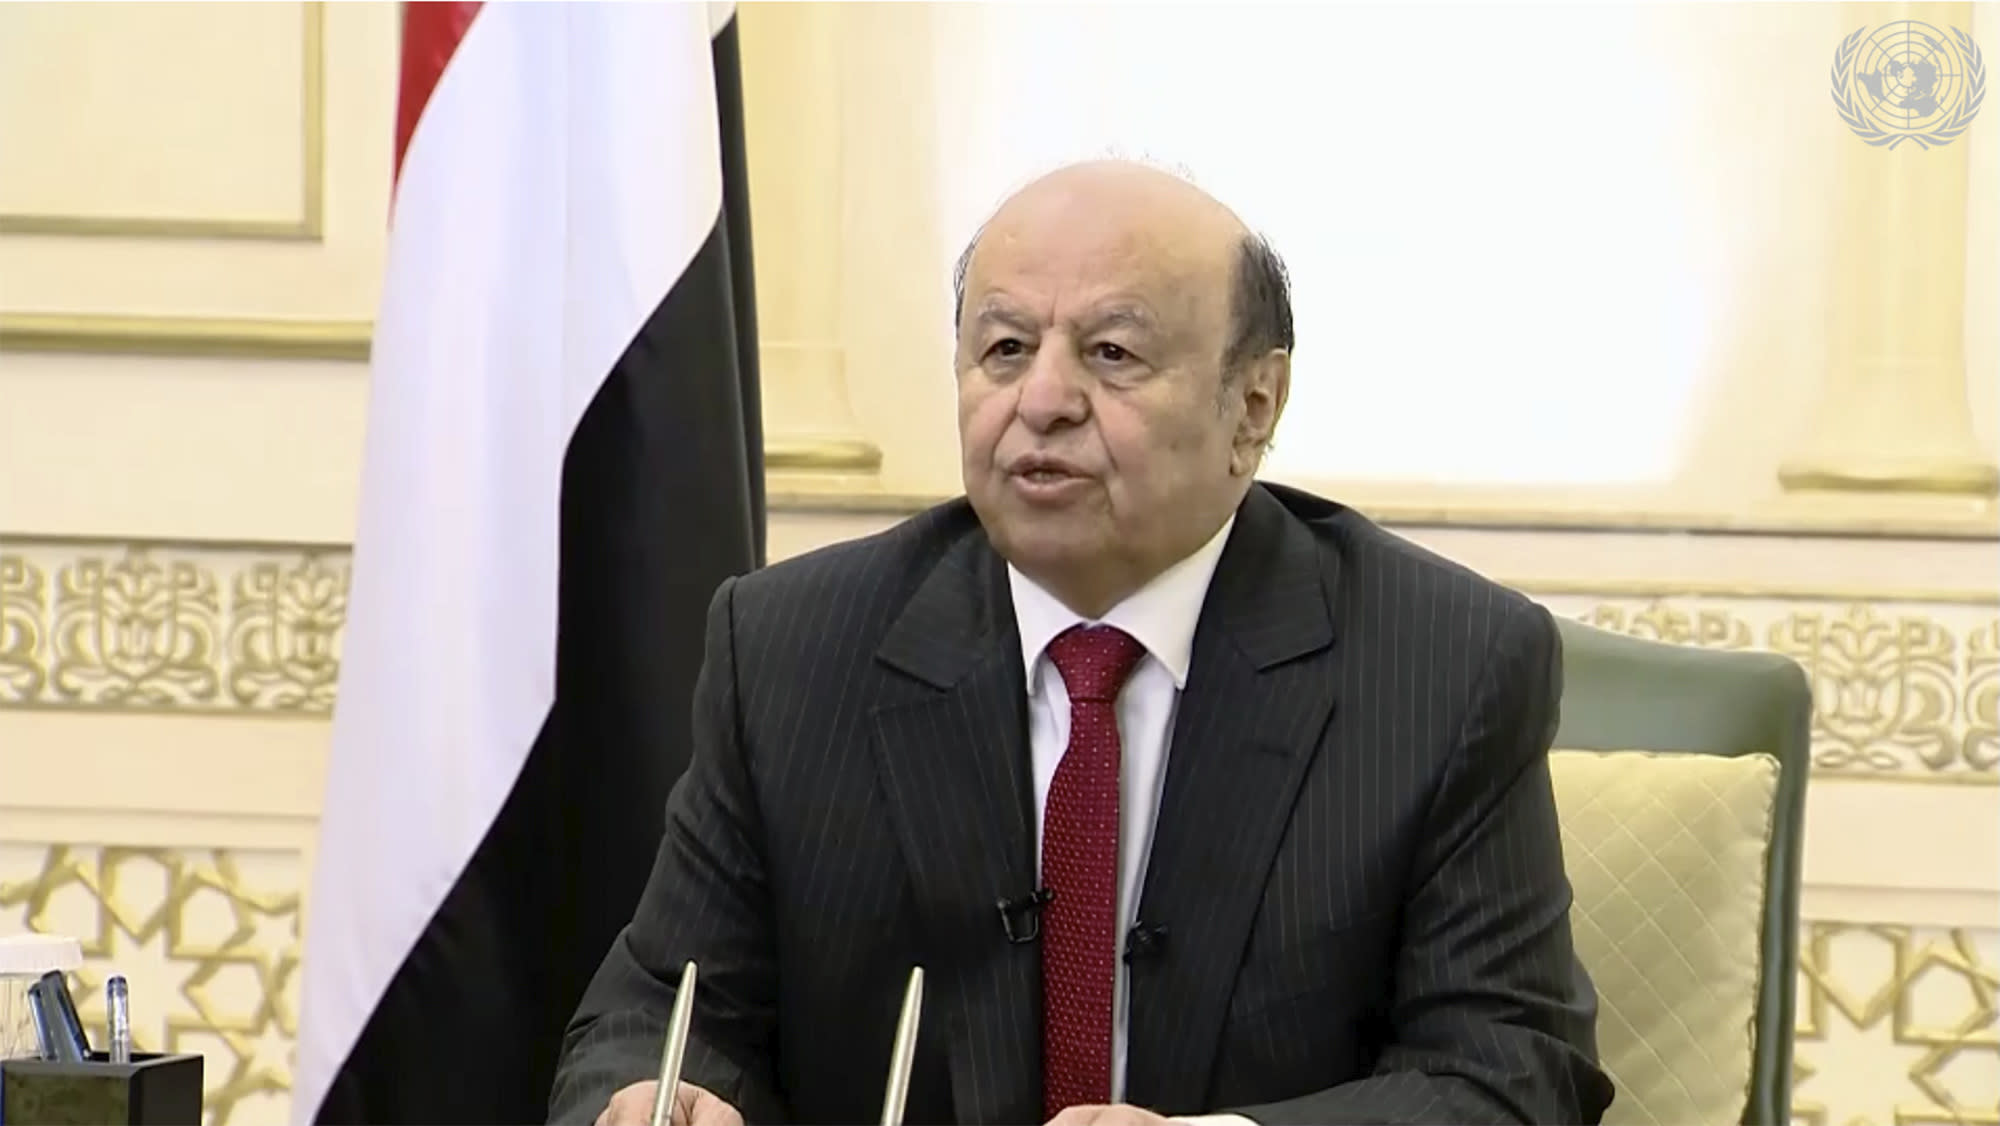 In this image made from UNTV video, Abdrabuh Mansour Hadi Mansour, President, of Yemen, speaks in a pre-recorded message which was played during the 75th session of the United Nations General Assembly, Thursday Sept. 24, 2020, at U.N. headquarters in New York. (UNTV via AP)